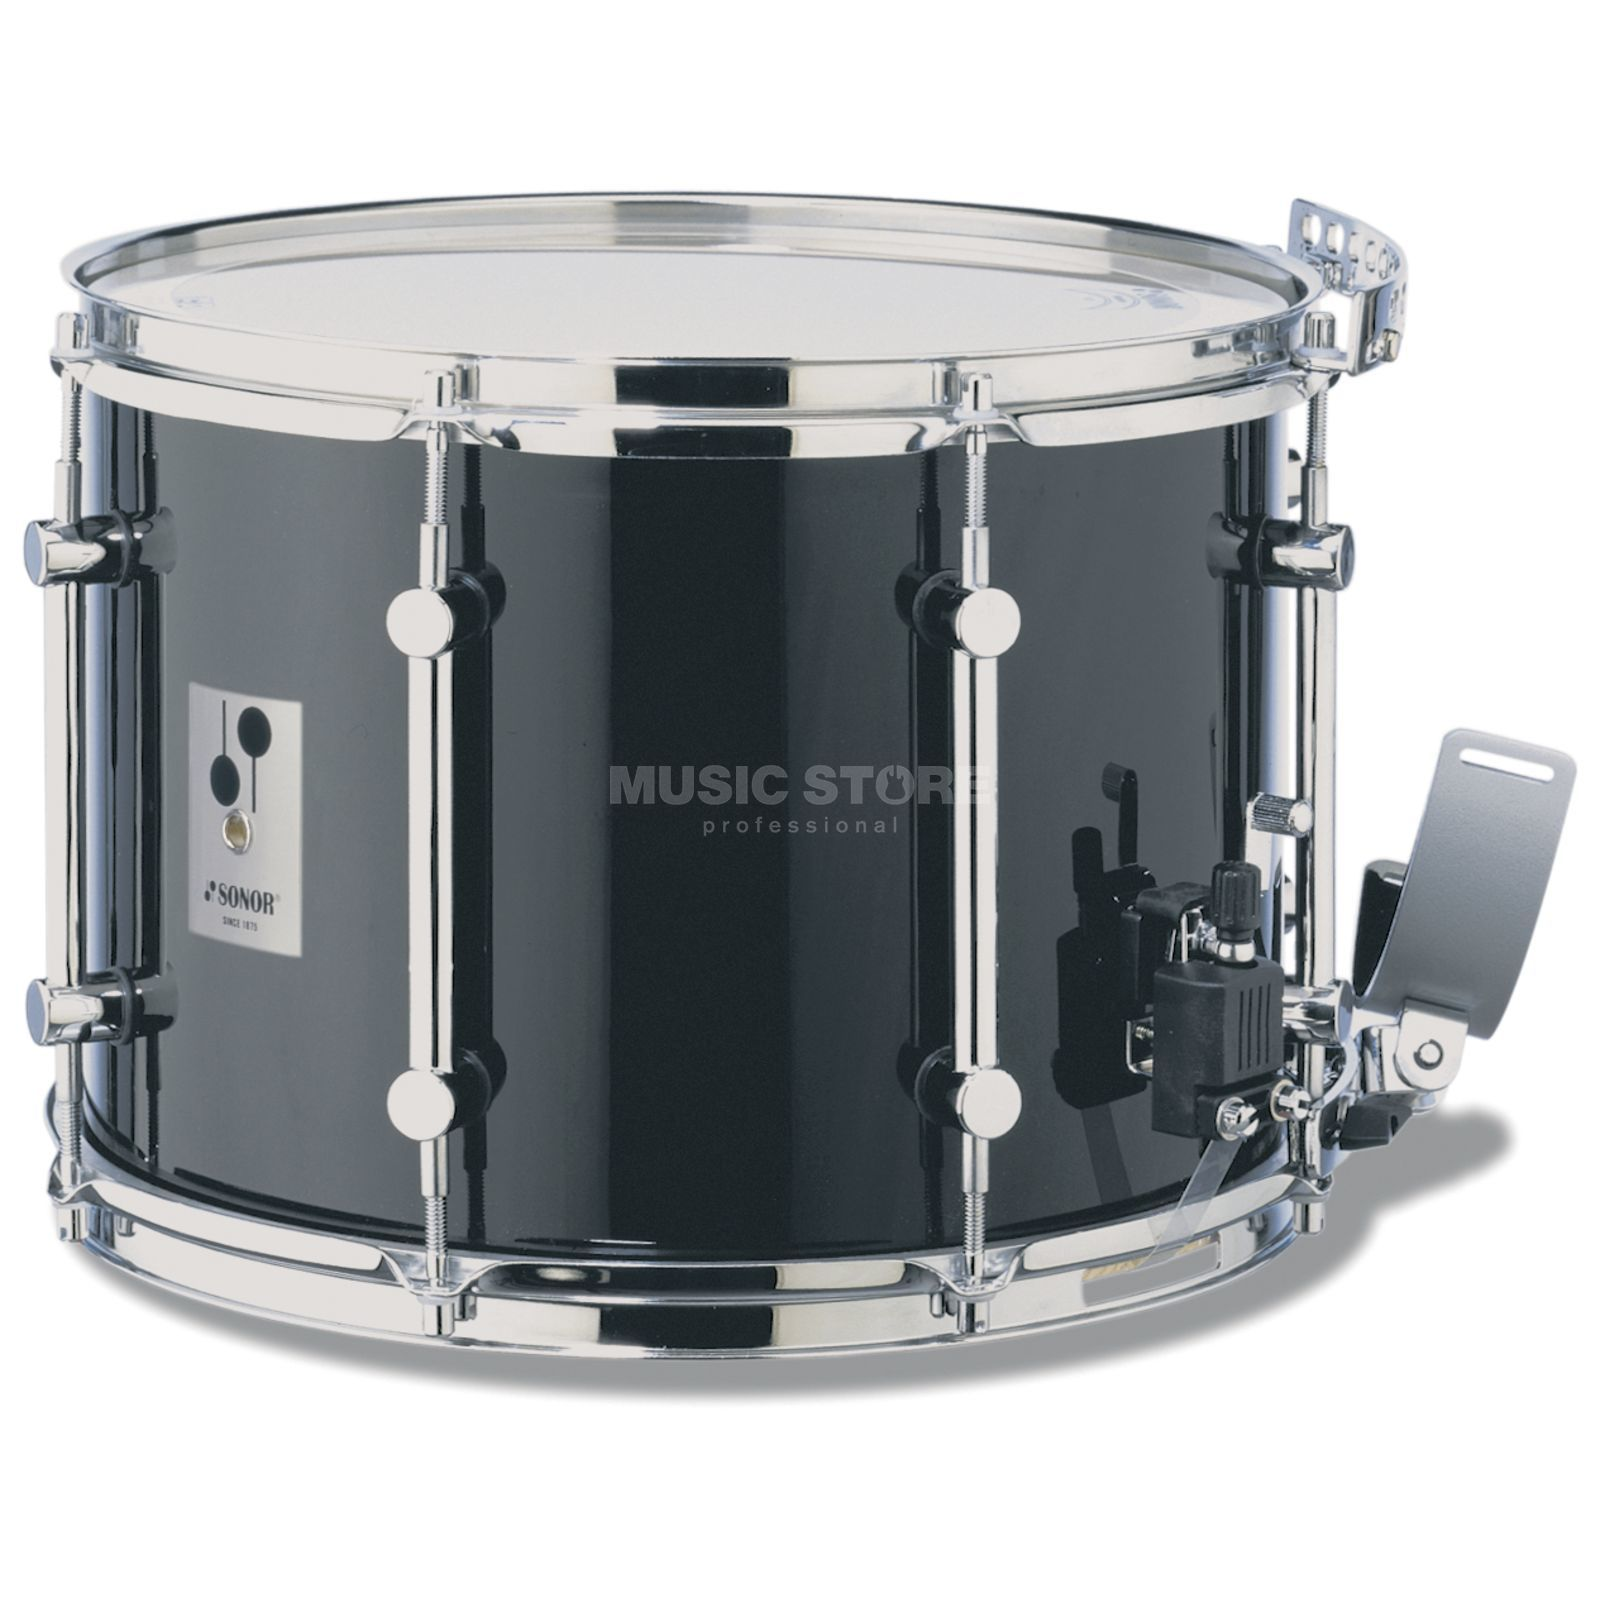 "Sonor Marching Snare MB1410CB, 14""x10"", serie B-Line, negro Imagen del producto"